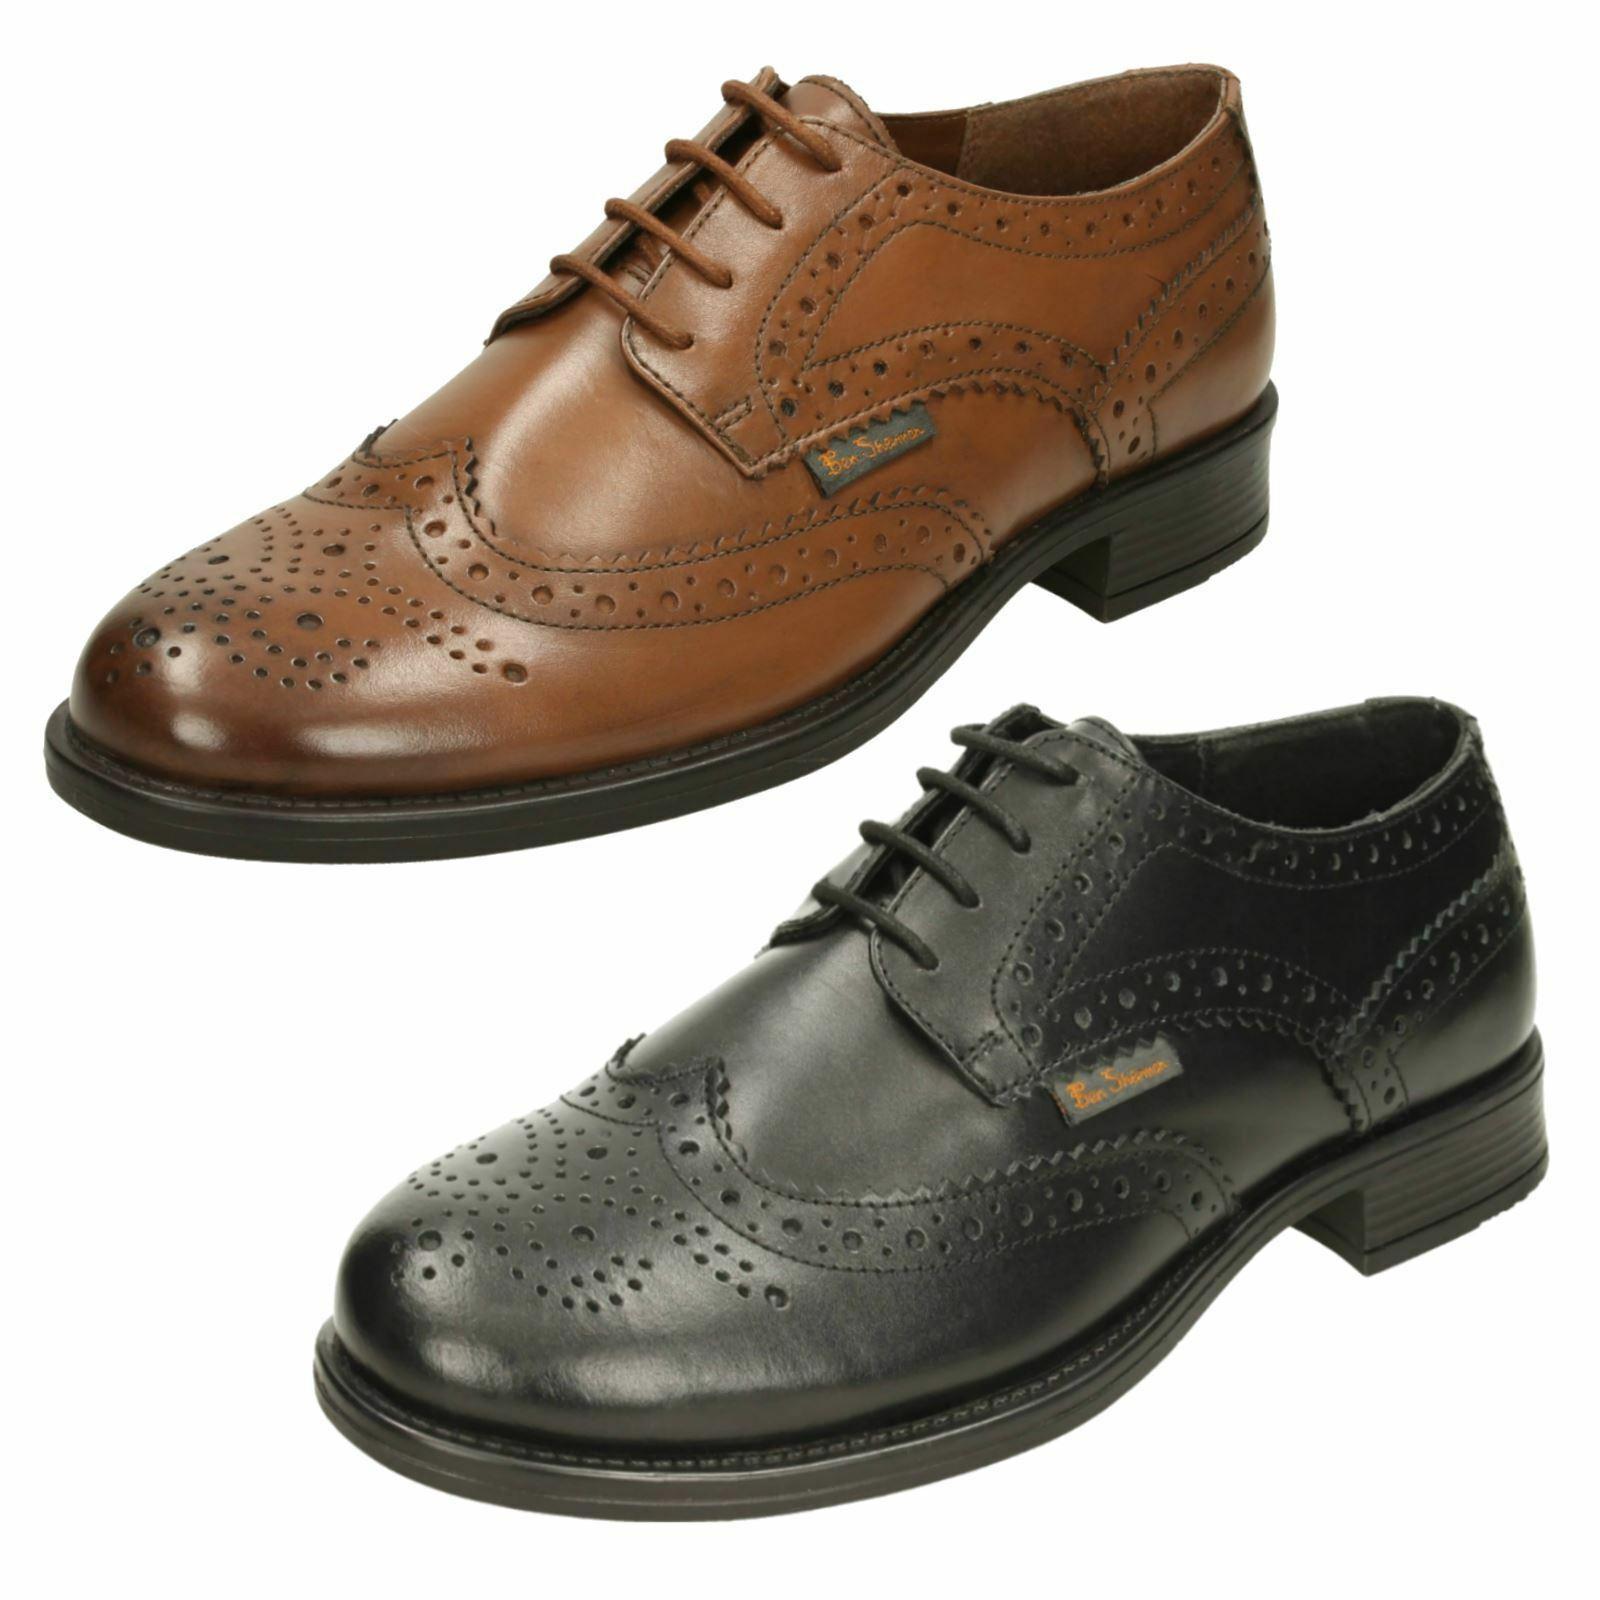 BEN SHERMBN Leather Brogue Lace Up Shoes Sizes 8-12 SIMPSON